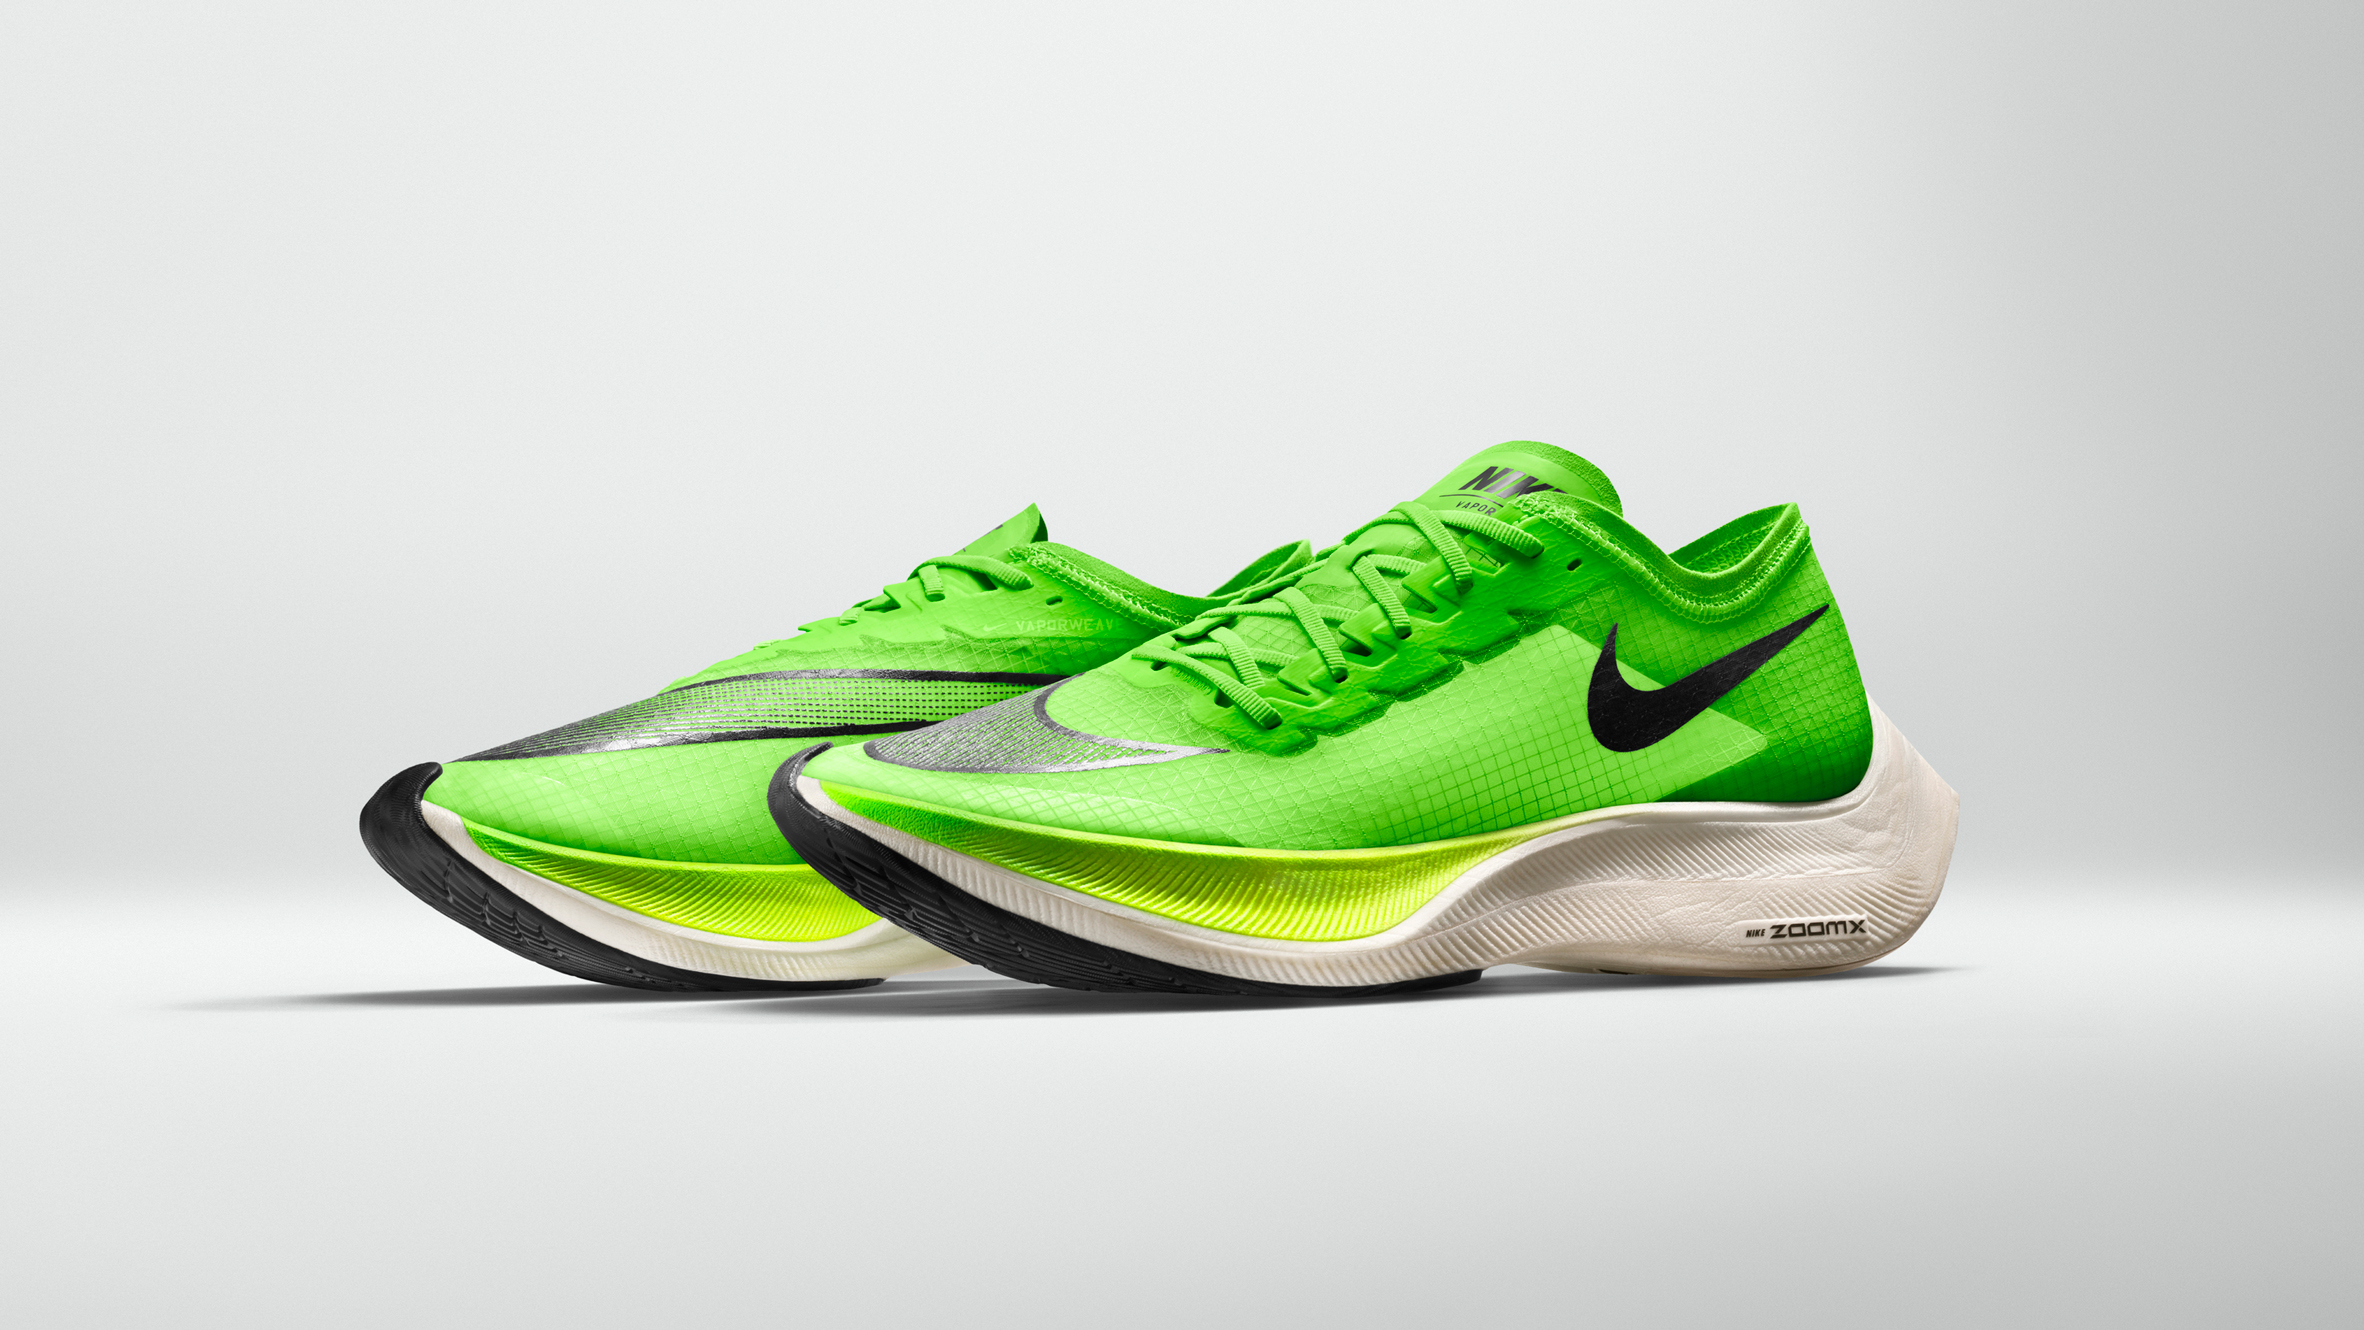 48bfc9fc2417a Nike ZoomX Vaporfly NEXT% trainer debuts at the London Marathon